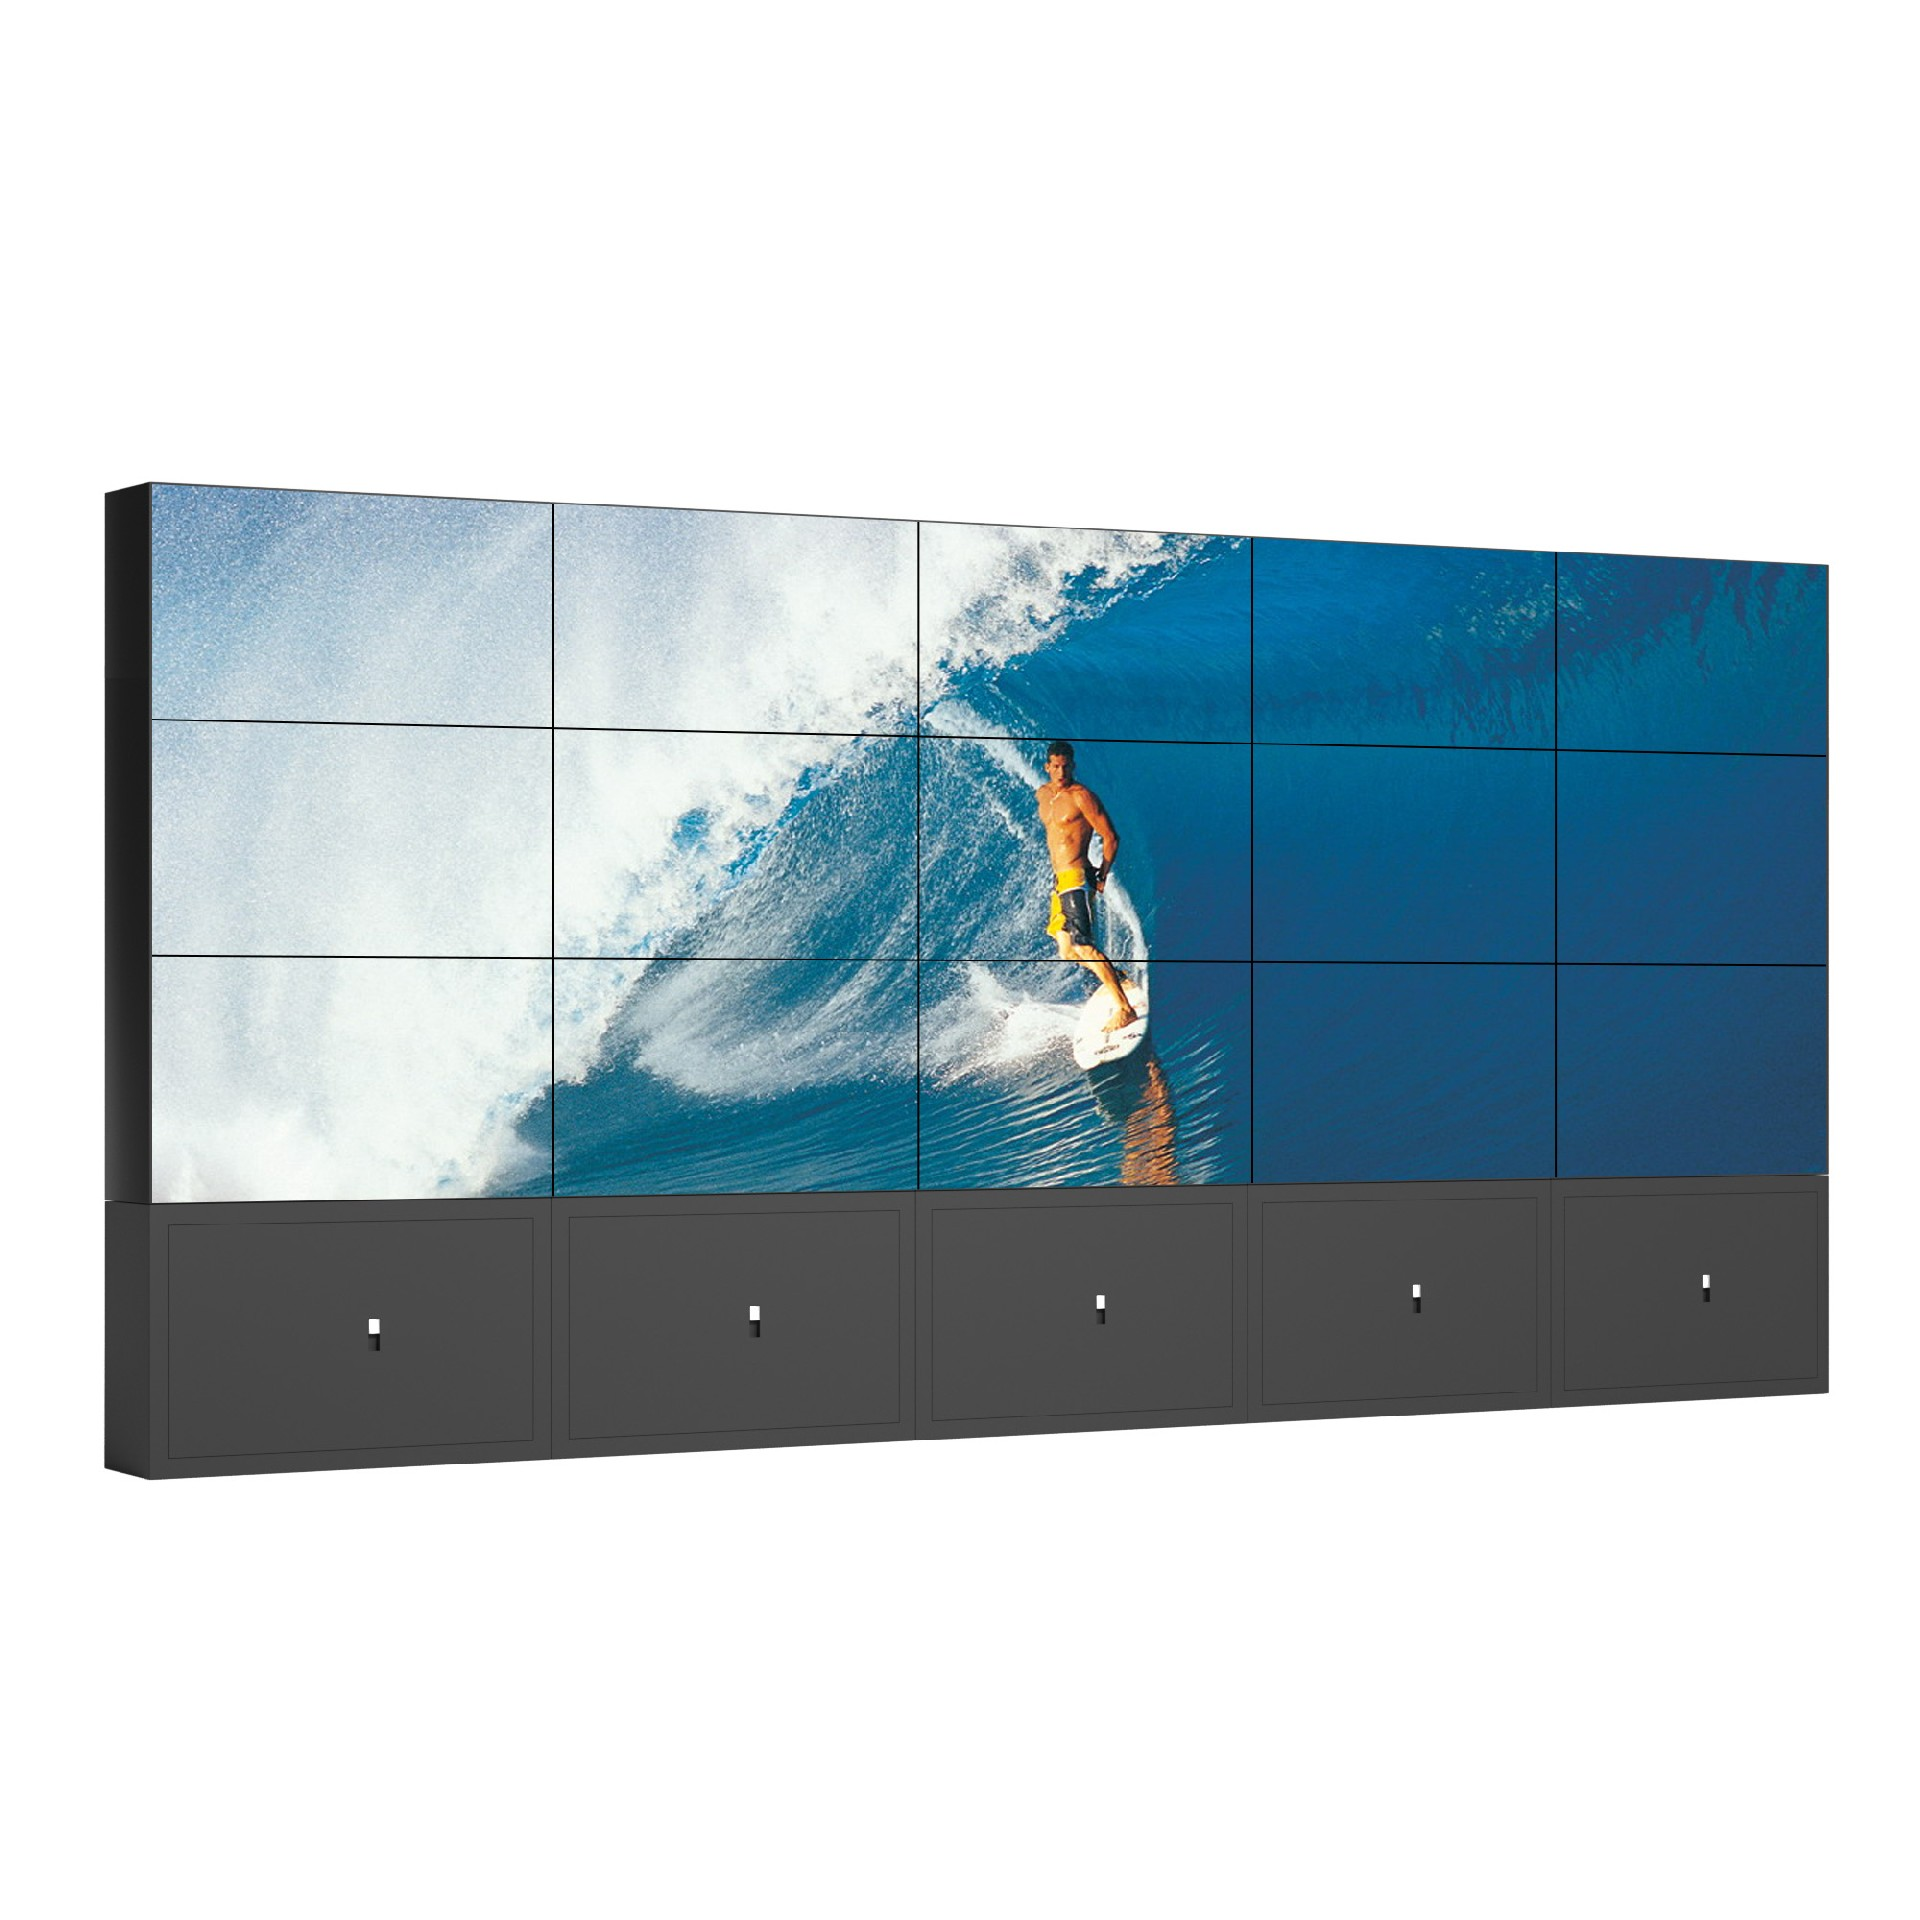 Free stand cabinet HD LCD screen video wall CCTV player